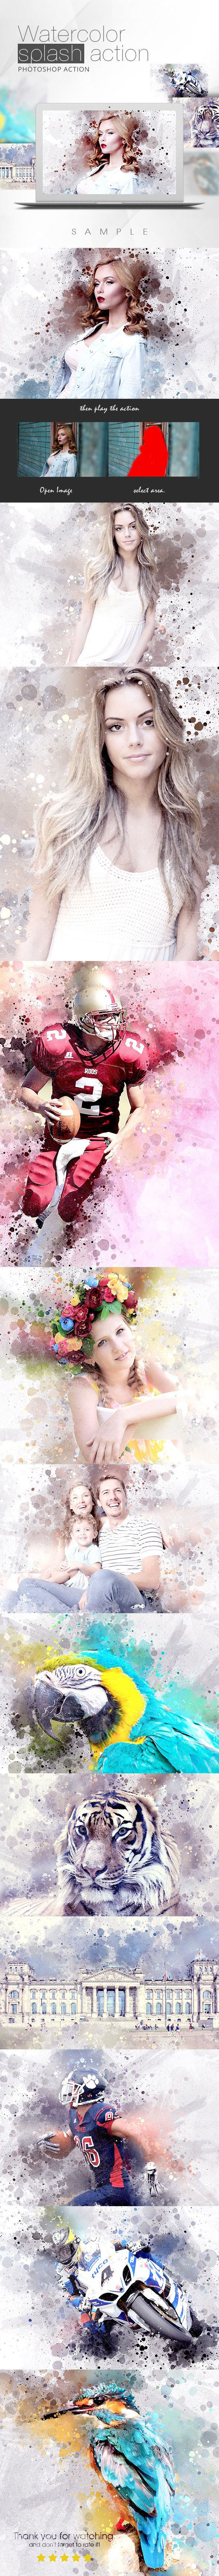 How to turn your photos into watercolor art - Watercolor Splash Action - Photo Effects Actions